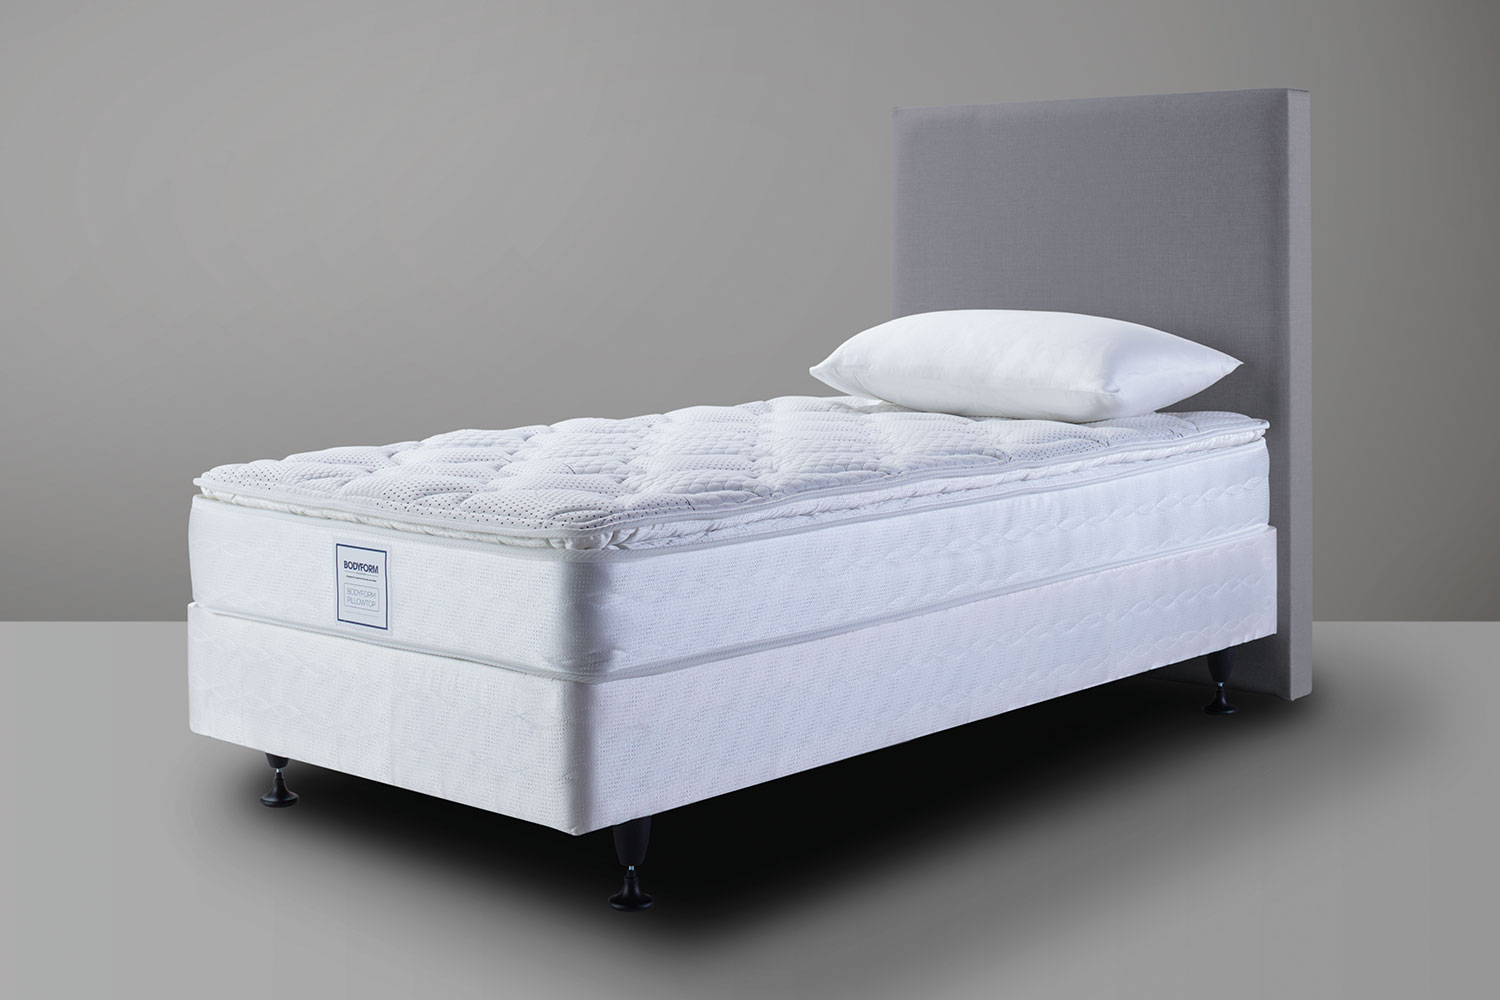 bodyform pillowtop king single bed by sealy